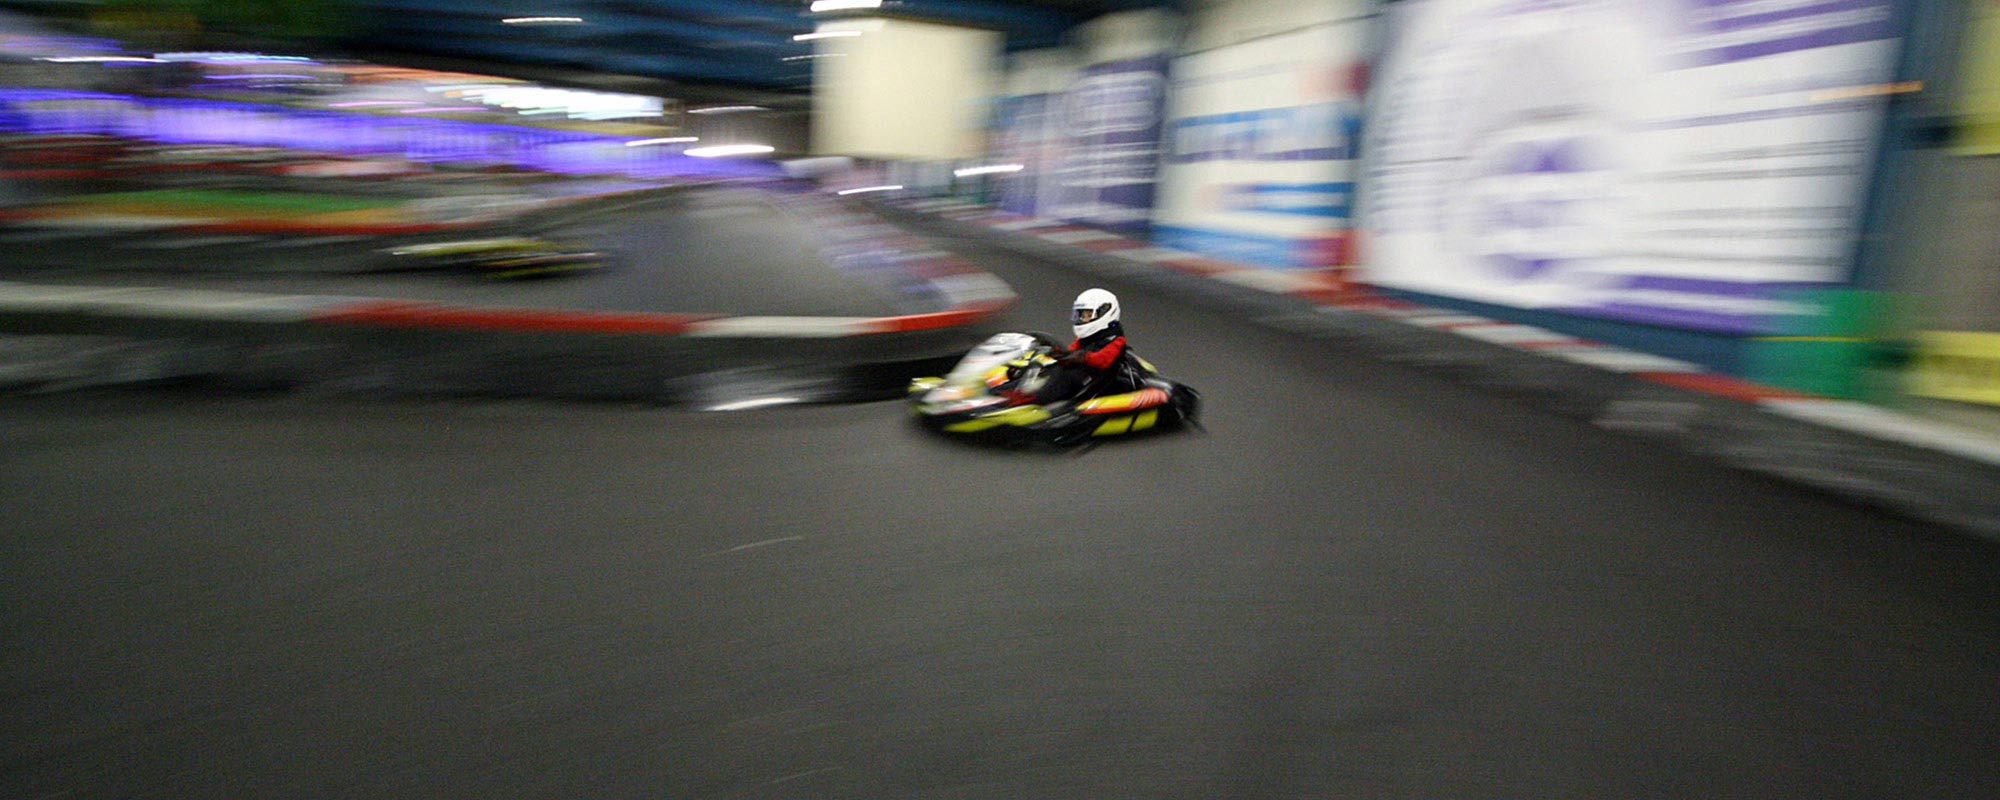 ebafkc-juniorkarting-2000x800-11